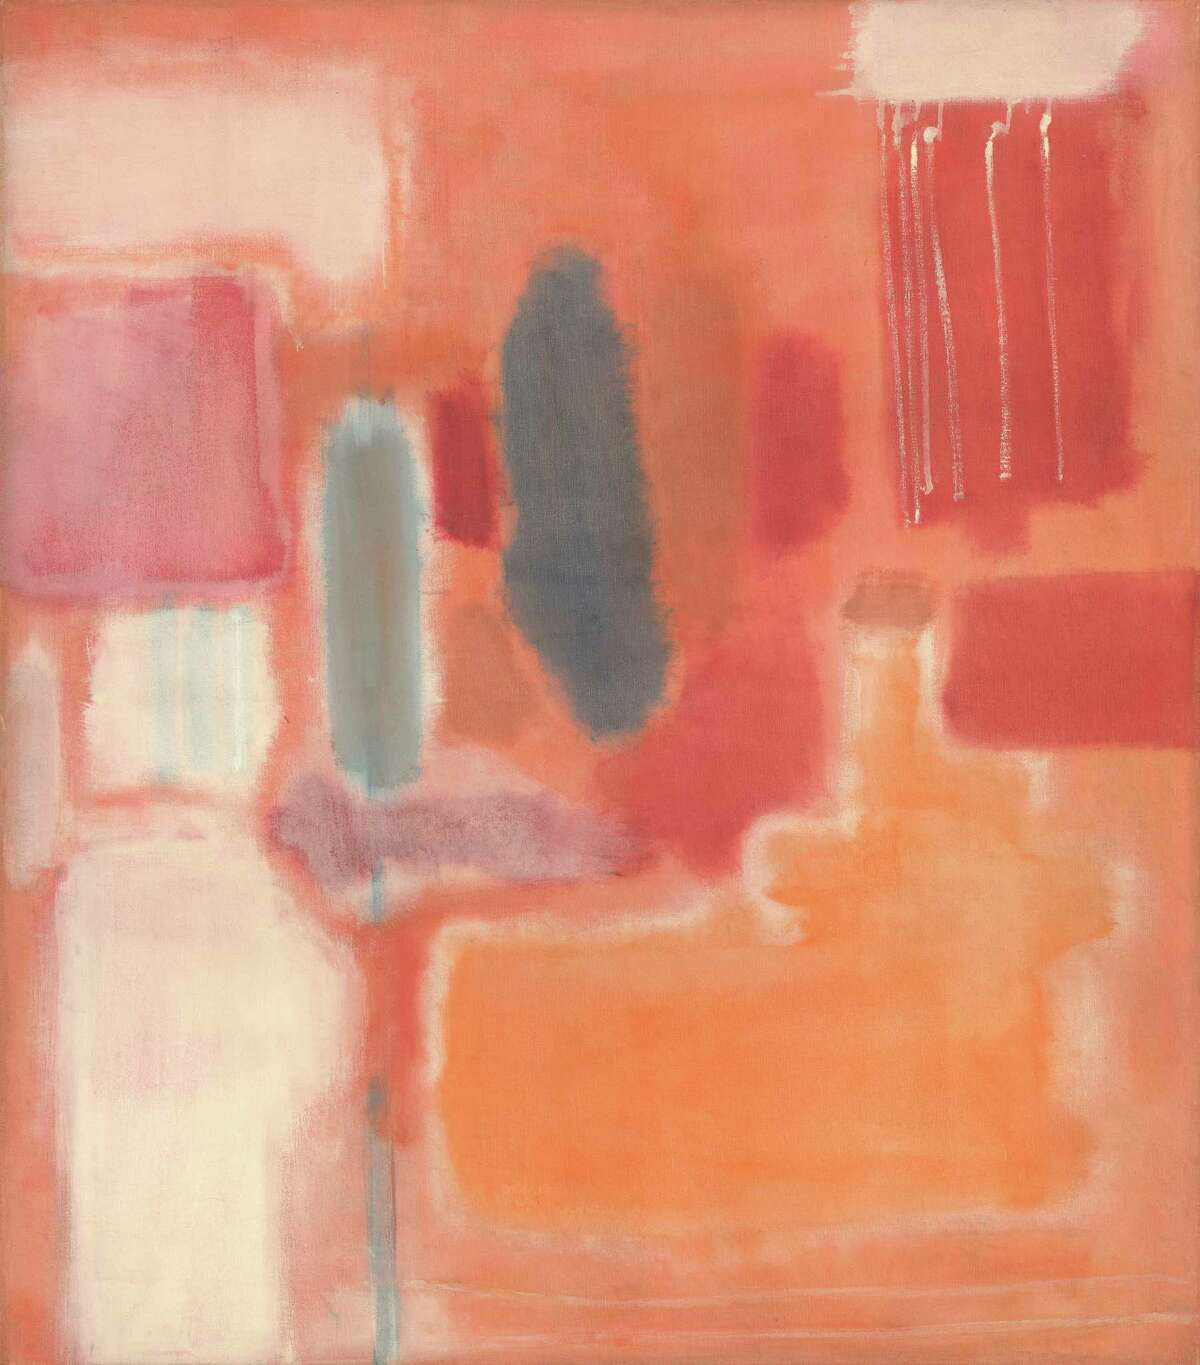 """Among works that will be on view Sept. 20 - Jan. 24 in the exhibition """"Mark Rothko: A Retrospective"""" at the Museum of Fine Arts, Houston is """"No. 9"""" (1948, oil and mixed media on canvas, National Gallery of Art, Washington, Gift of The Mark Rothko Foundation, Inc. Â 1998 by Kate Rothko Prizel and Christopher Rothko)"""